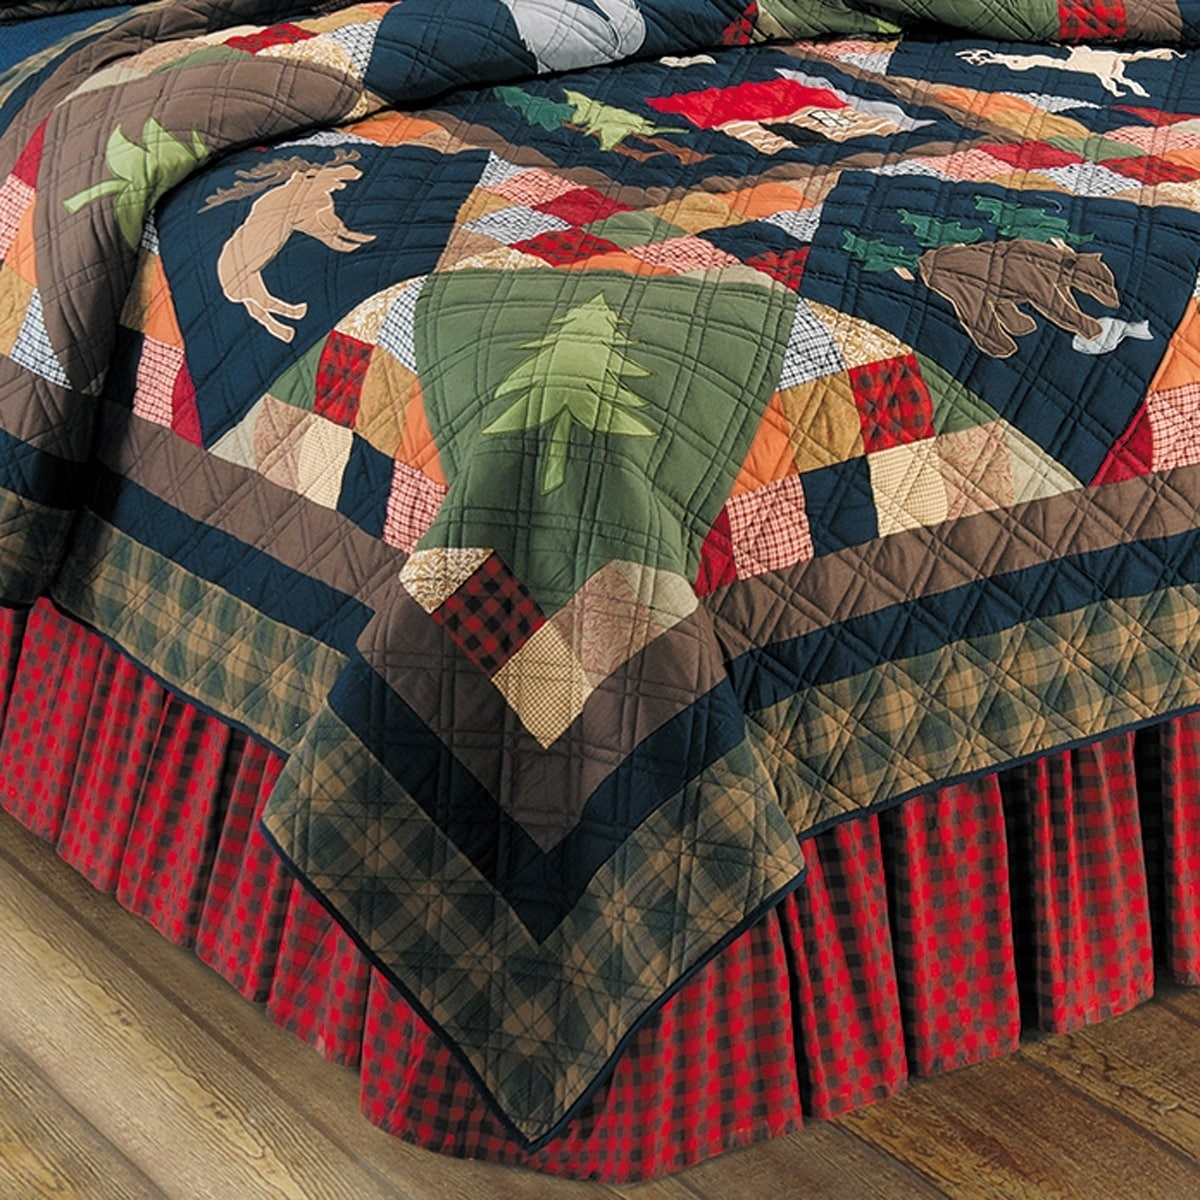 TIMBERLINE Lodge Patchwork Twin Quilt MOOSE BEAR CABIN PINE TREES Comforter C/&F